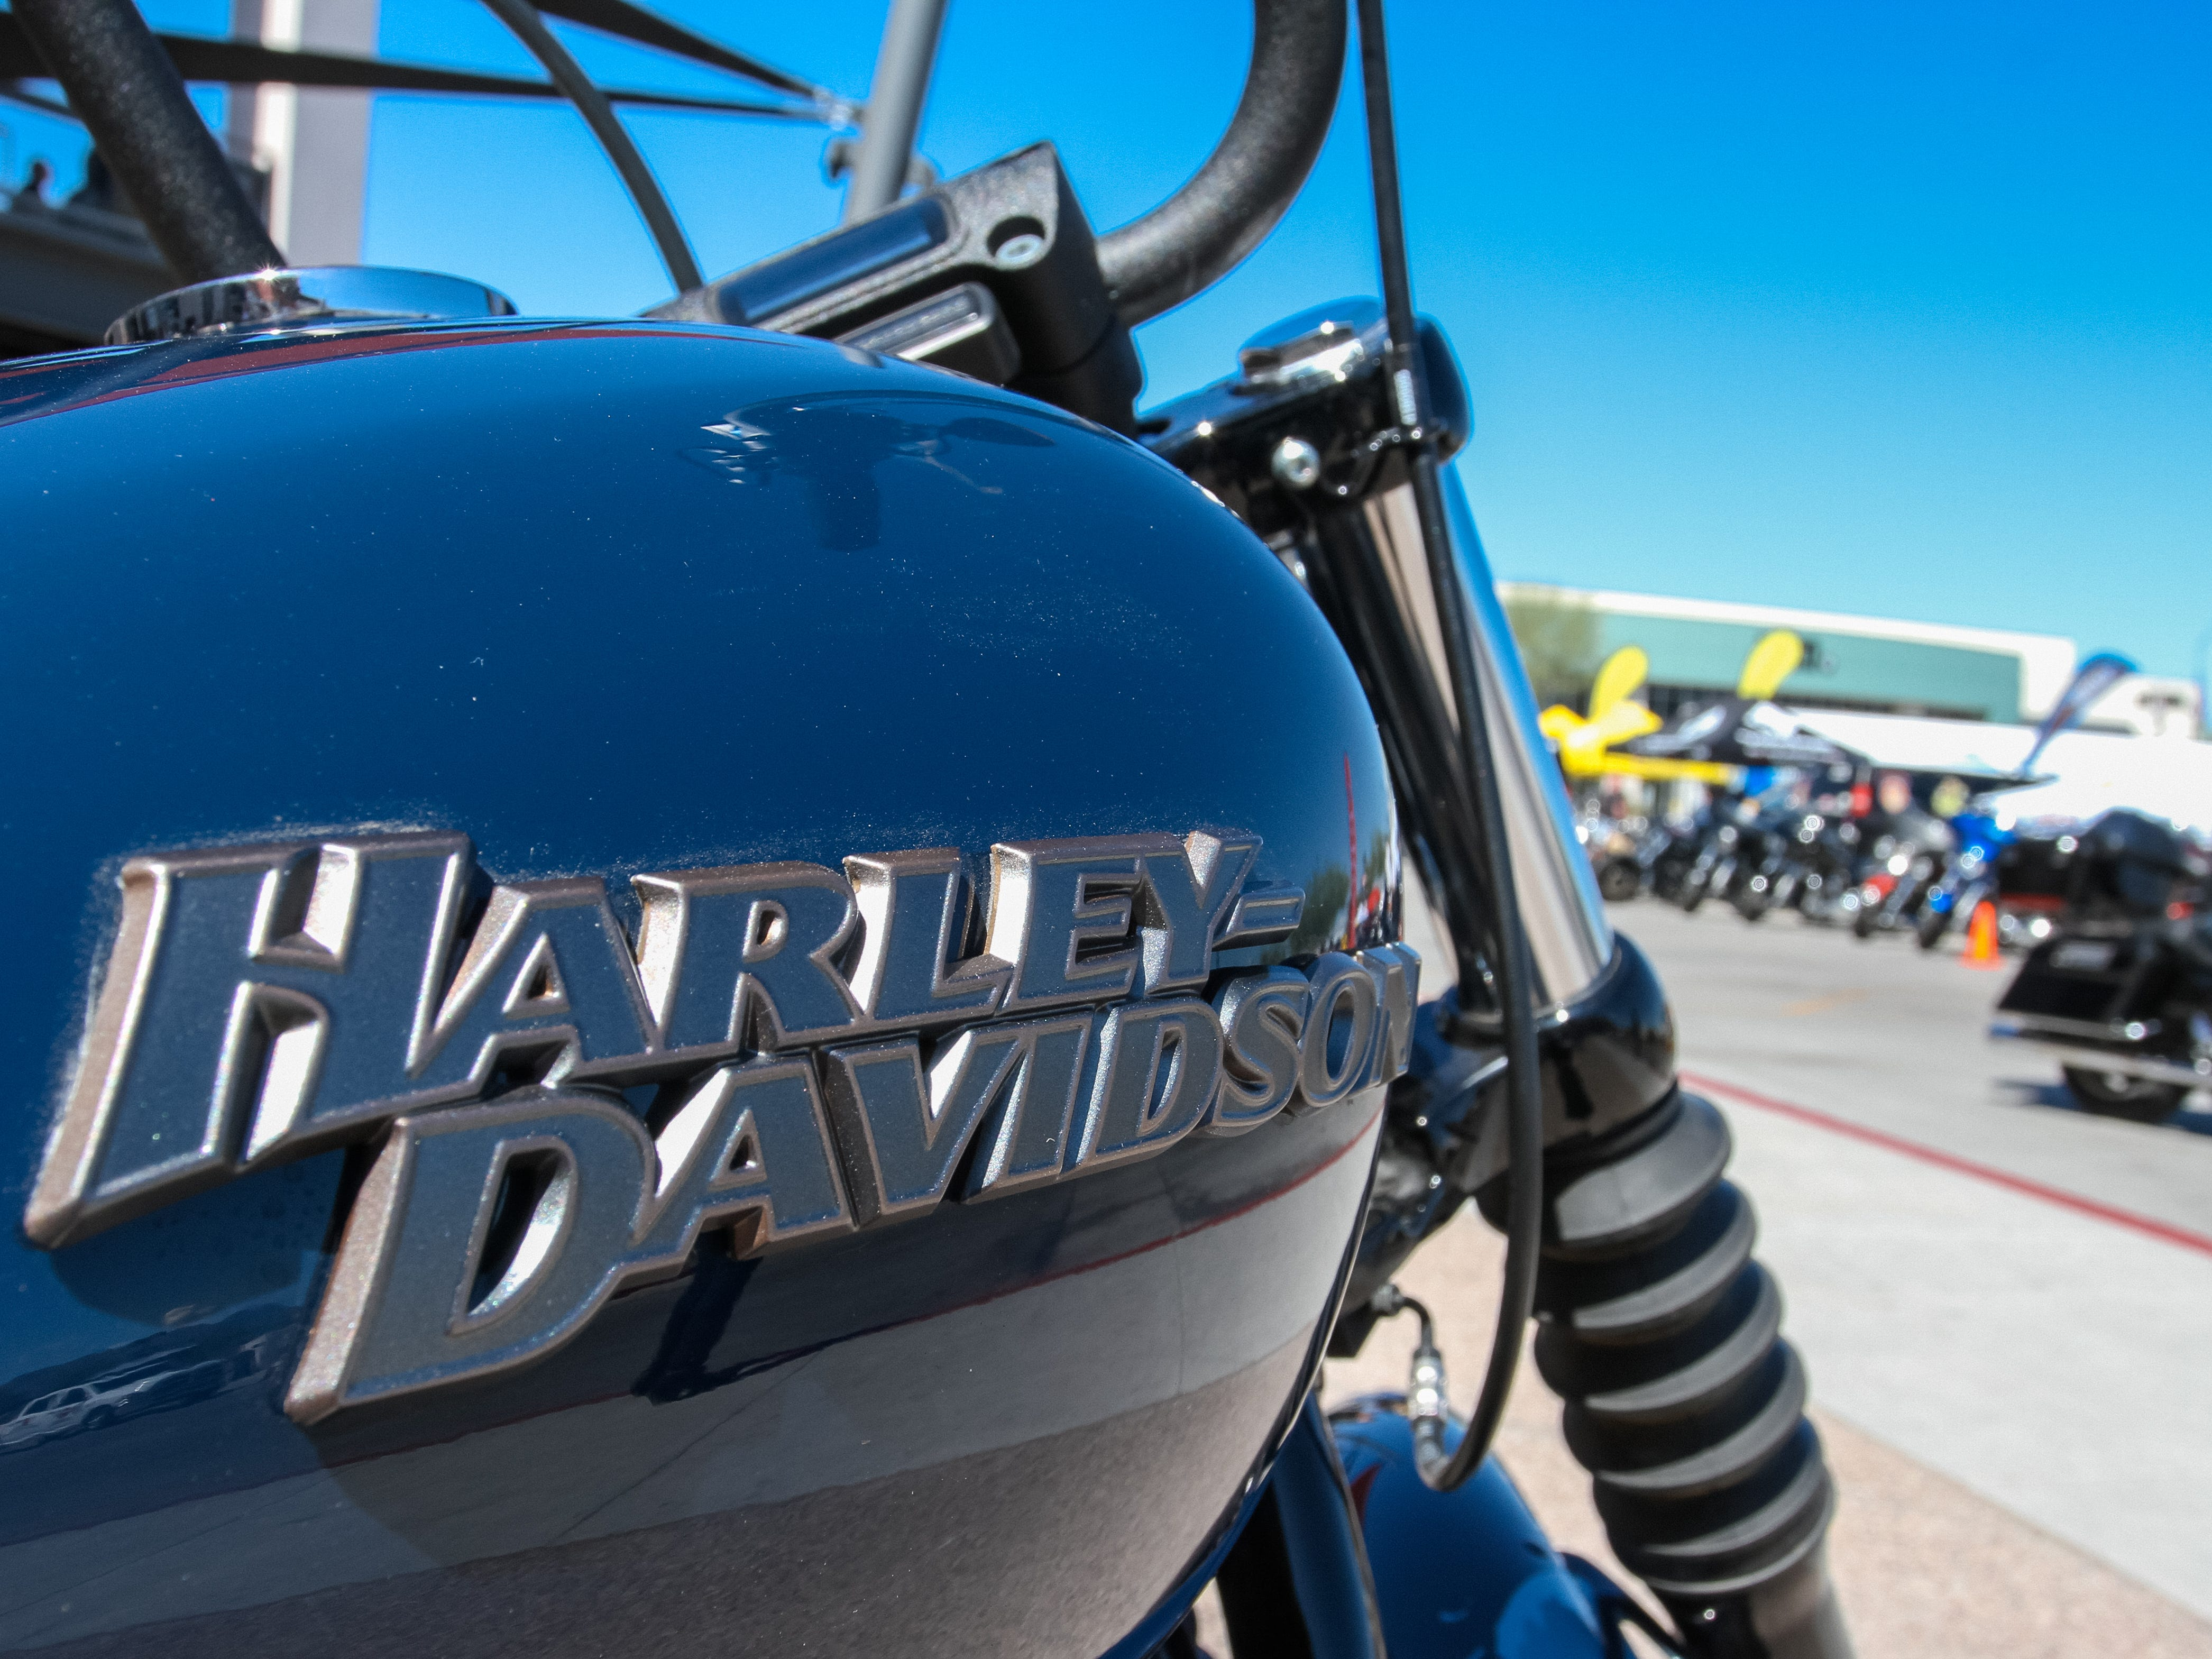 Riders from all over Arizona and surrounding states gather at the Harley Davidson of Scottsdale in Scottsdale on April 6, 2019.